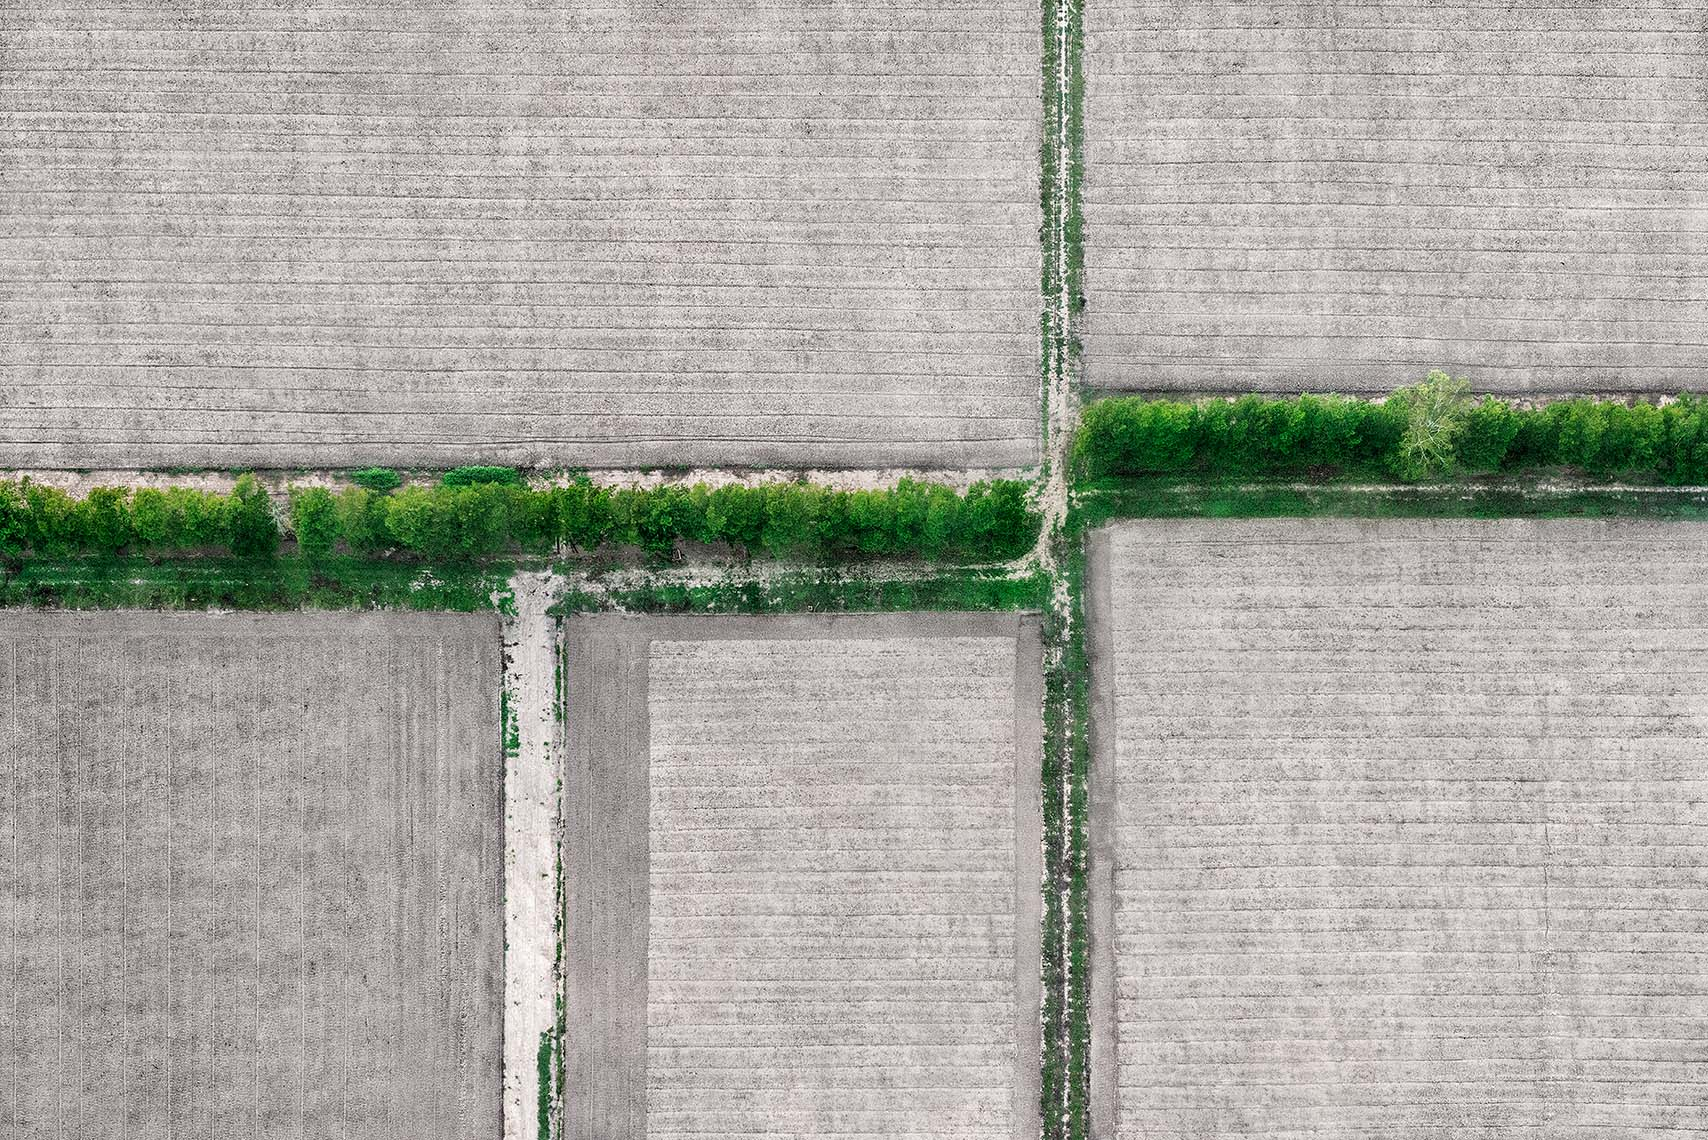 Zoe Wetherall / Aerial Landscape / Divided Field